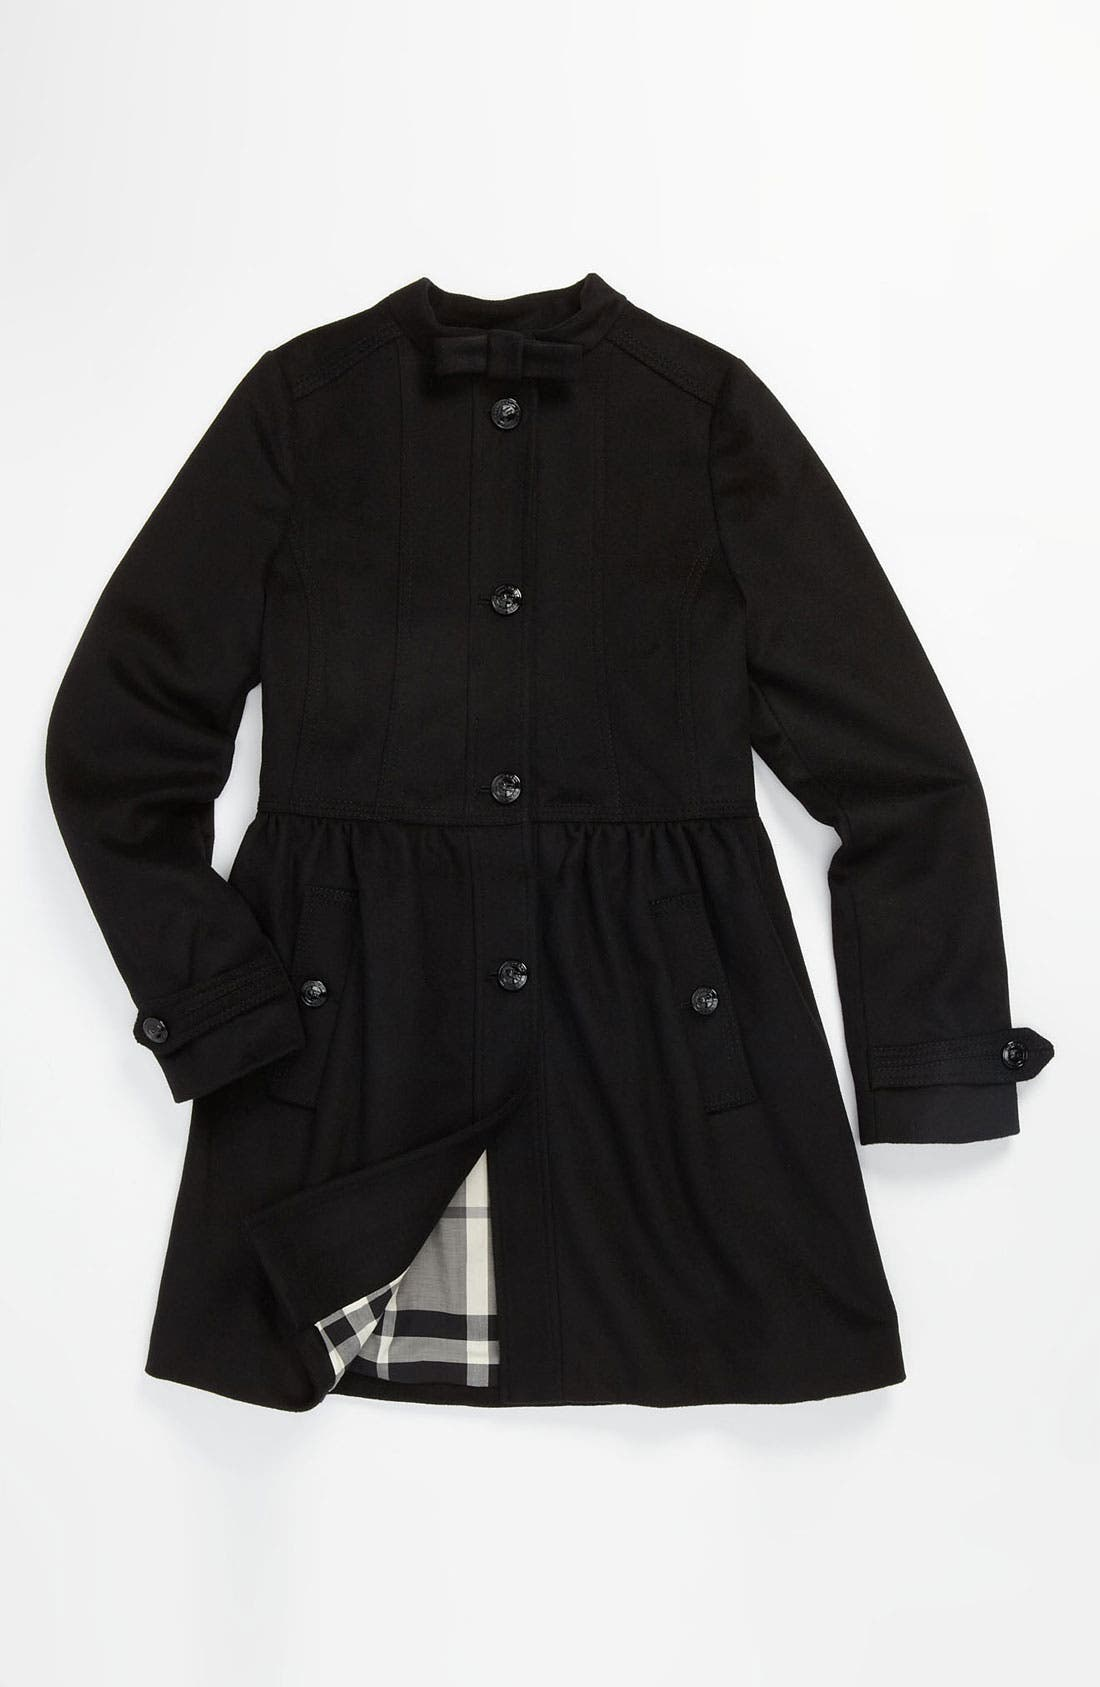 Main Image - Burberry Wool Blend Peacoat (Little Girls & Big Girls)